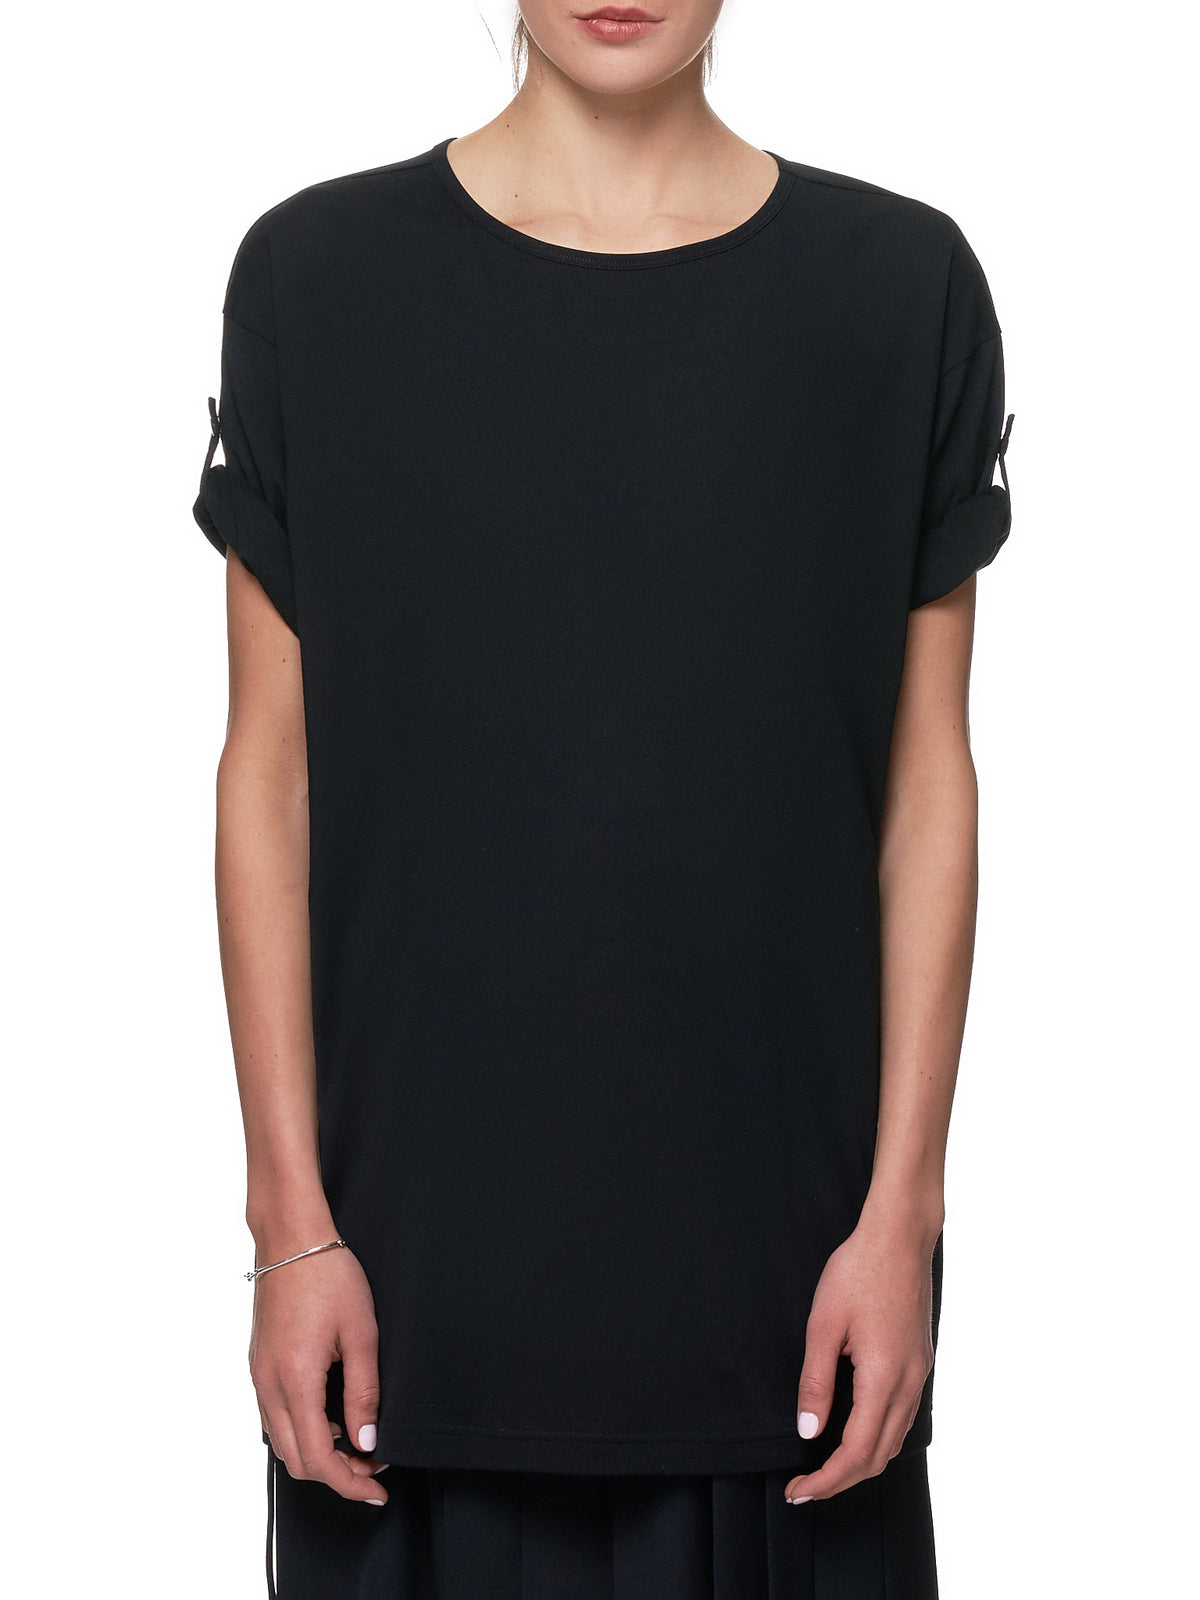 Oversized T-Shirt (YH-B30-029-BLACK)